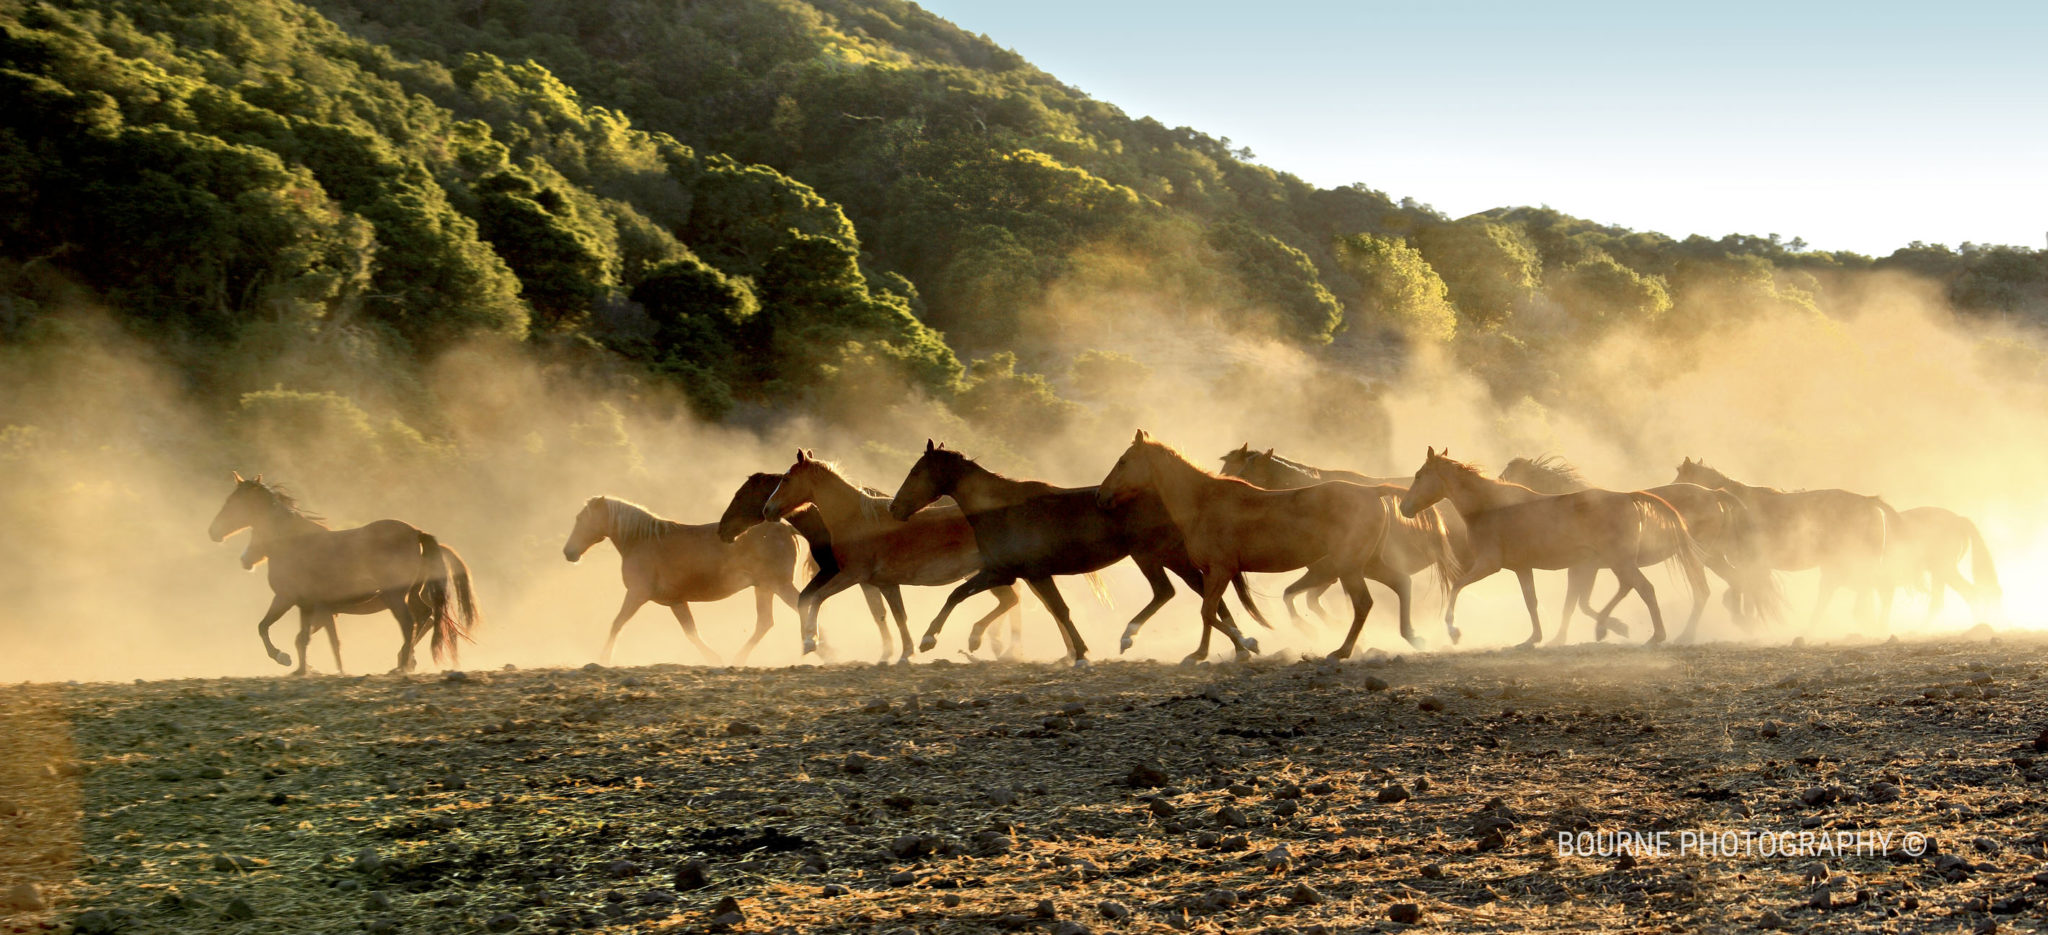 Band of wild horses running through the dust